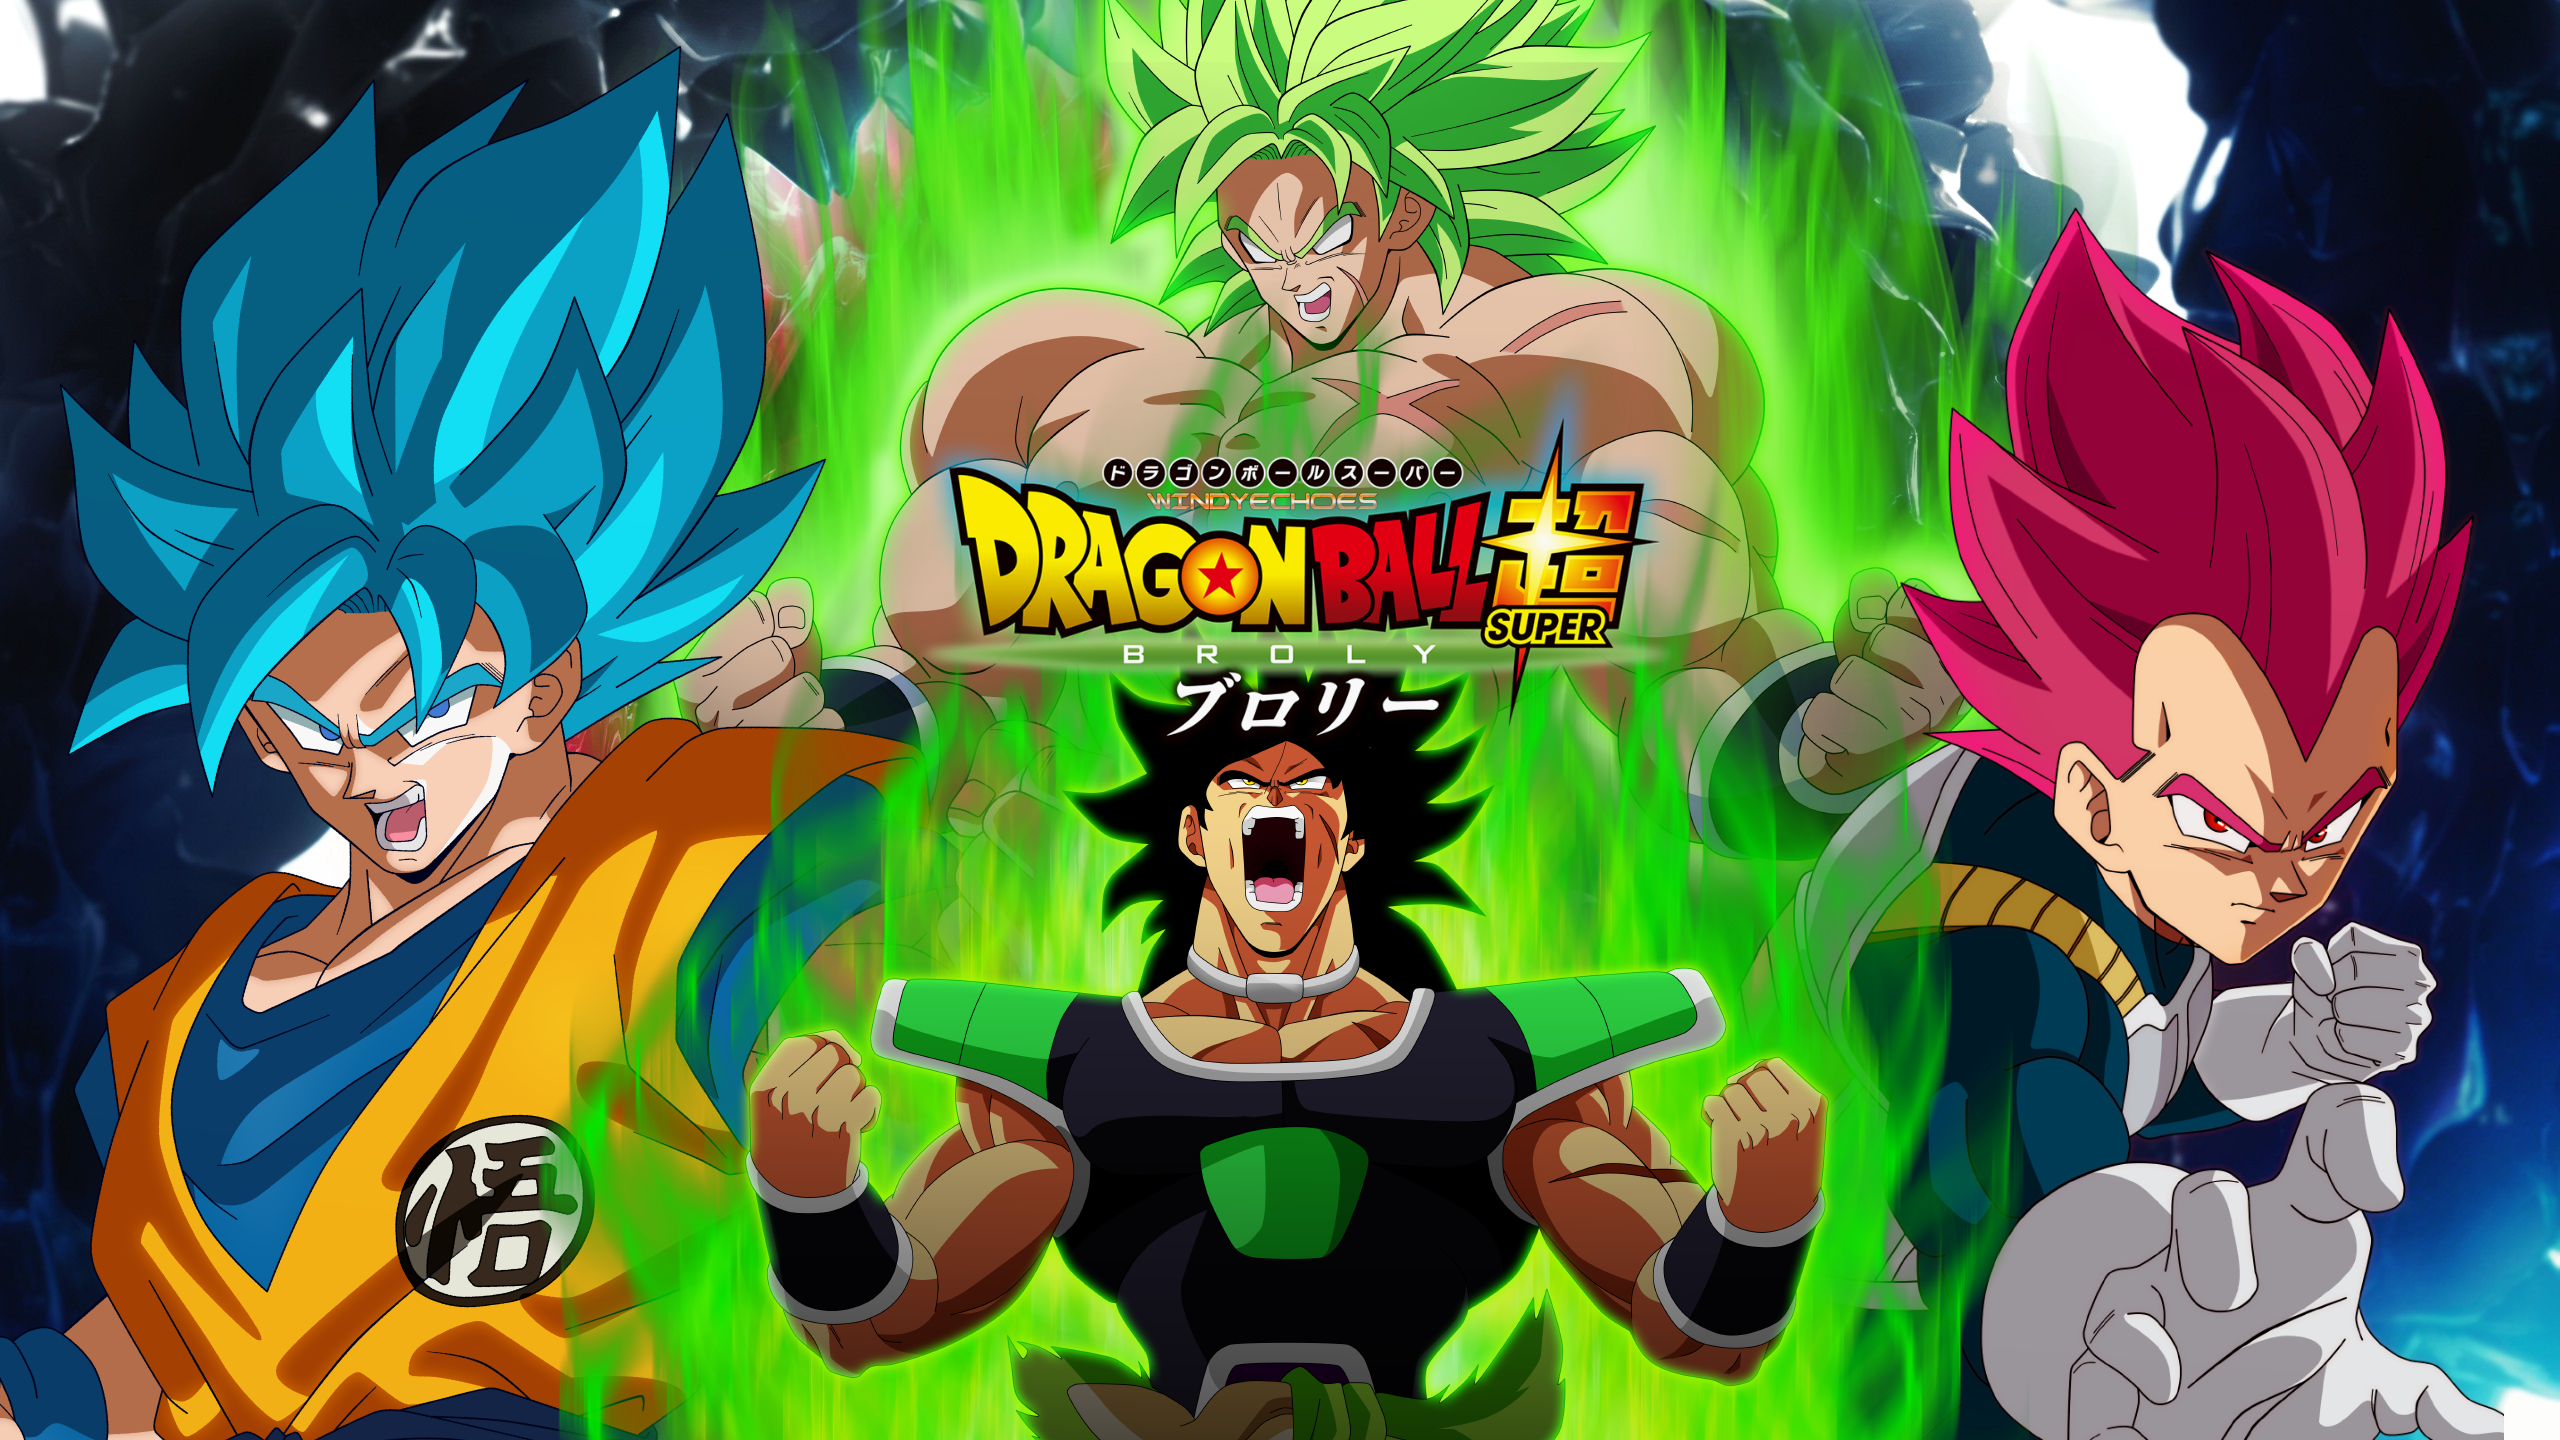 Dragon Ball Super Broly Wallpaper 2018 2019 By Windyechoes On